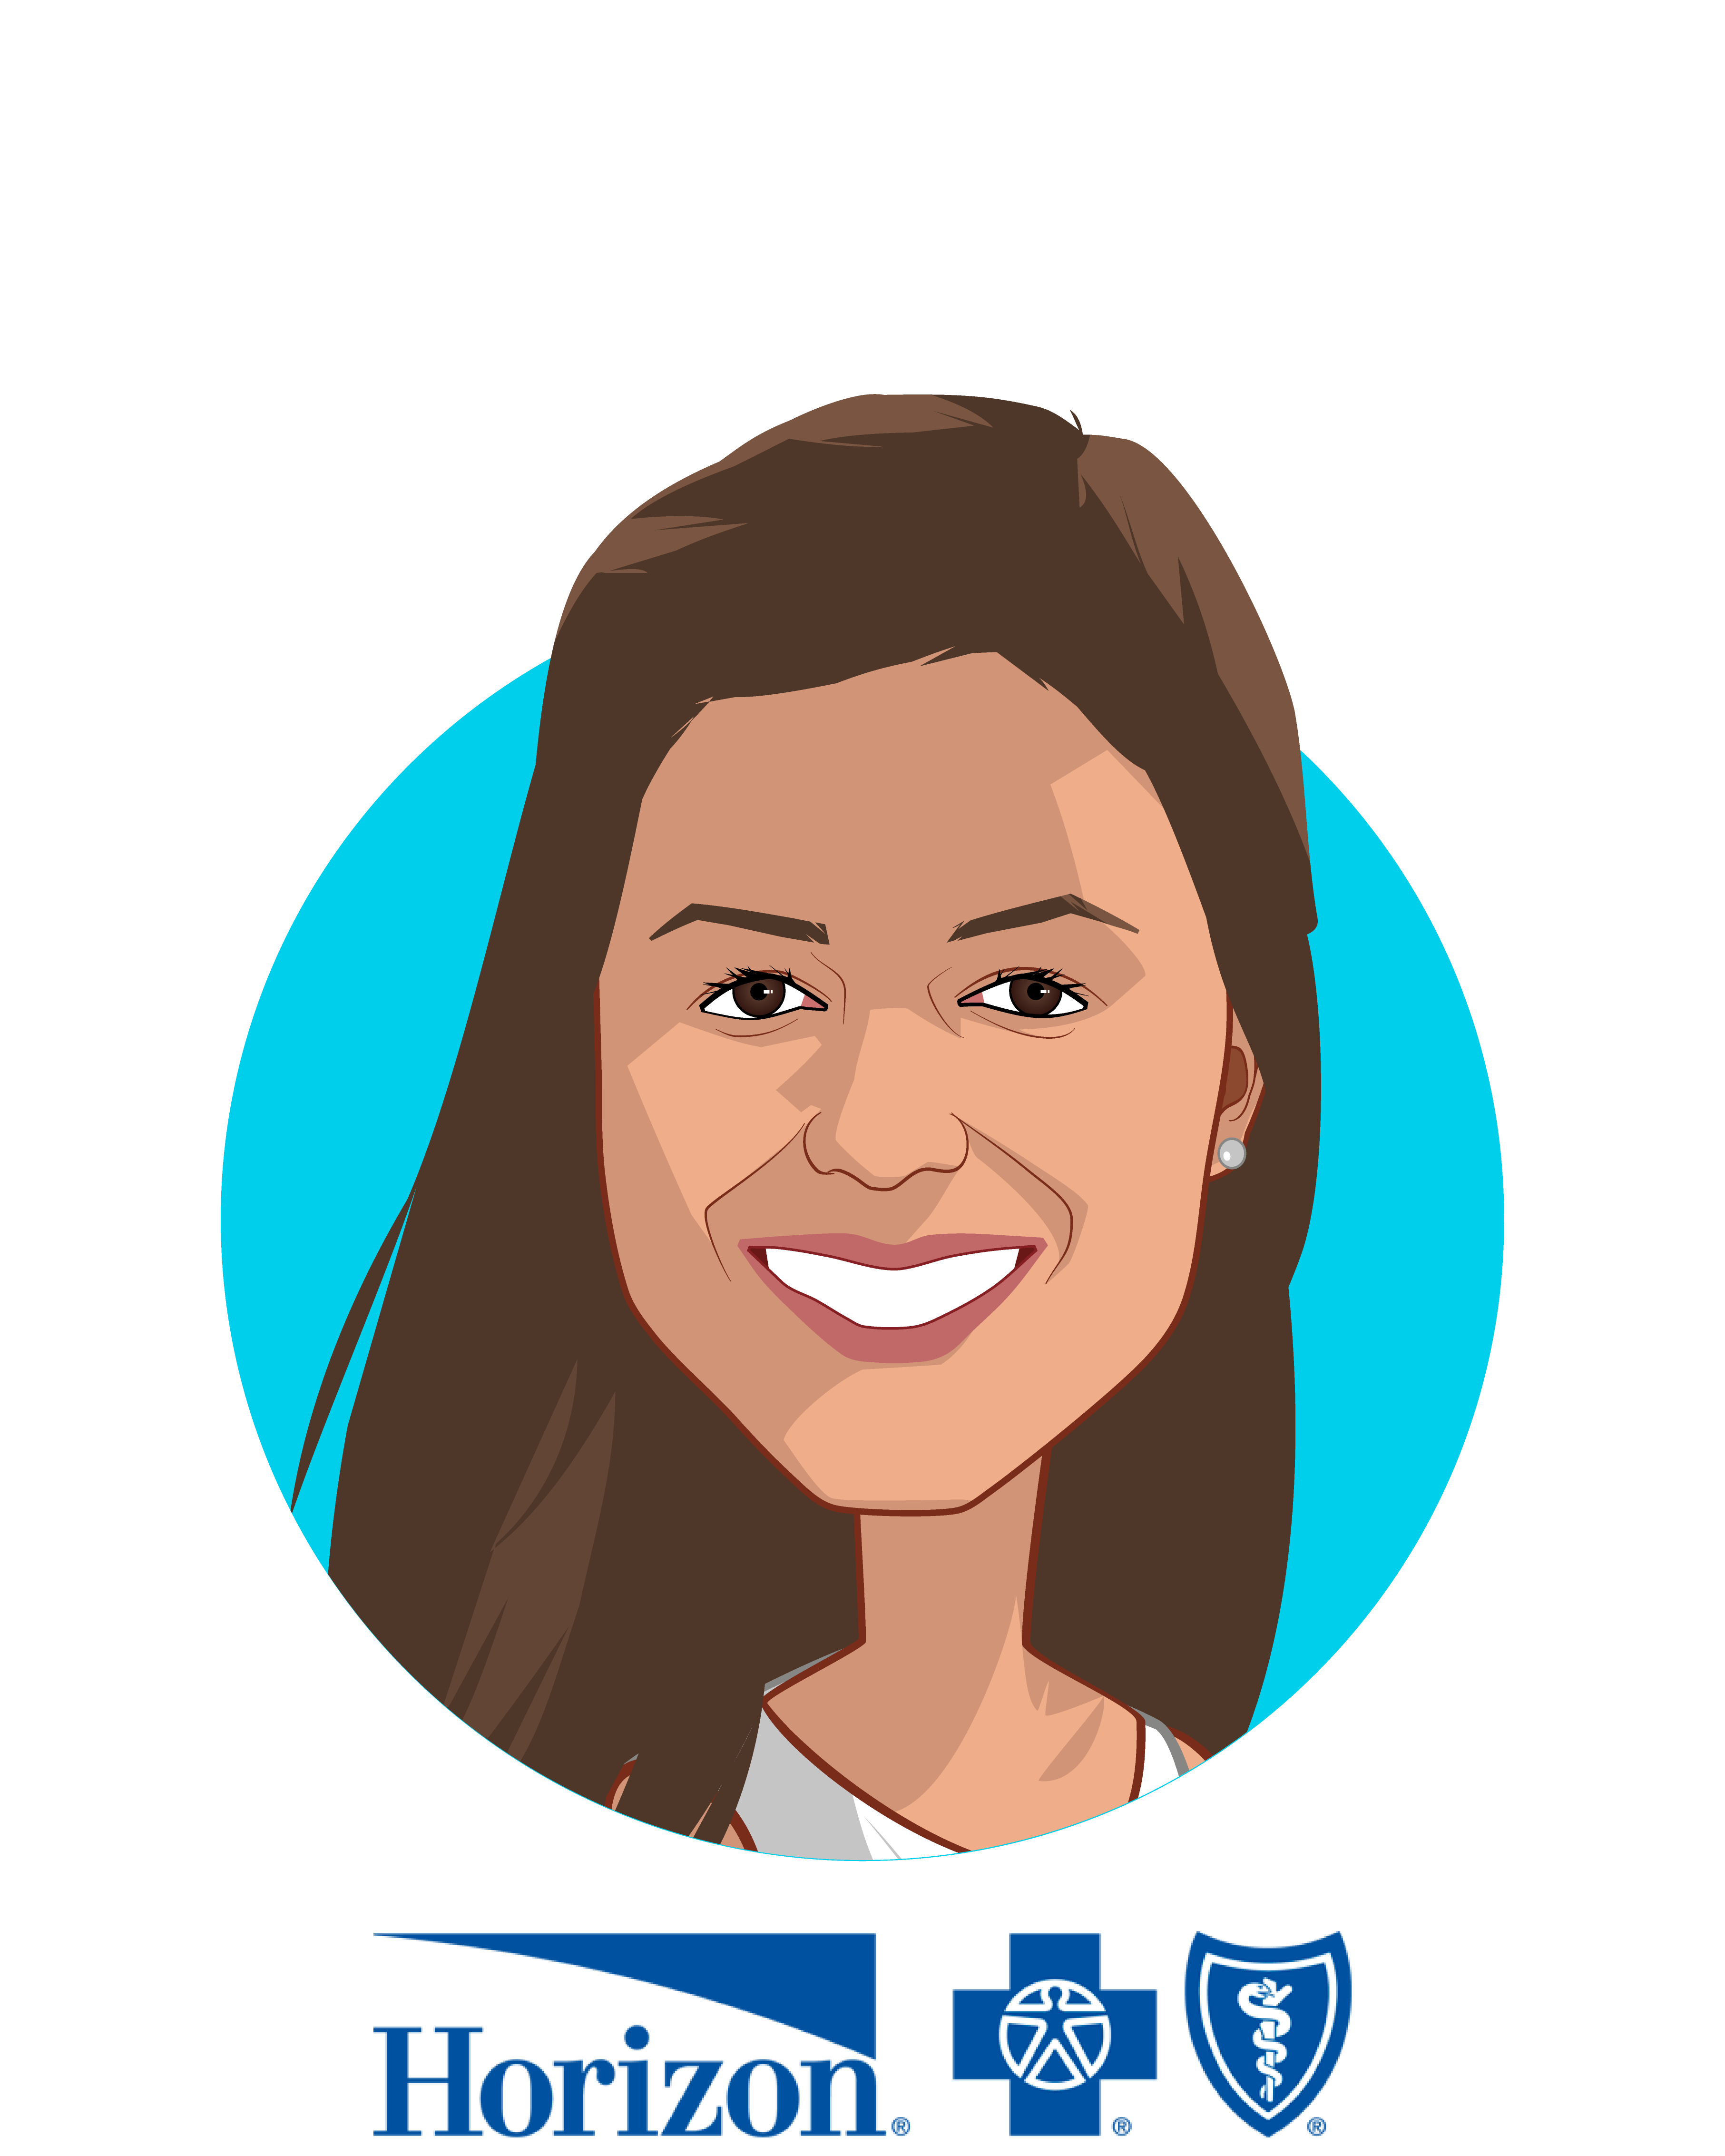 Main caricature of Divya Paliwal, MD, who is speaking at HLTH and is Chief Clinical Transformation Officer at Horizon Blue Cross Blue Shield of New Jersey